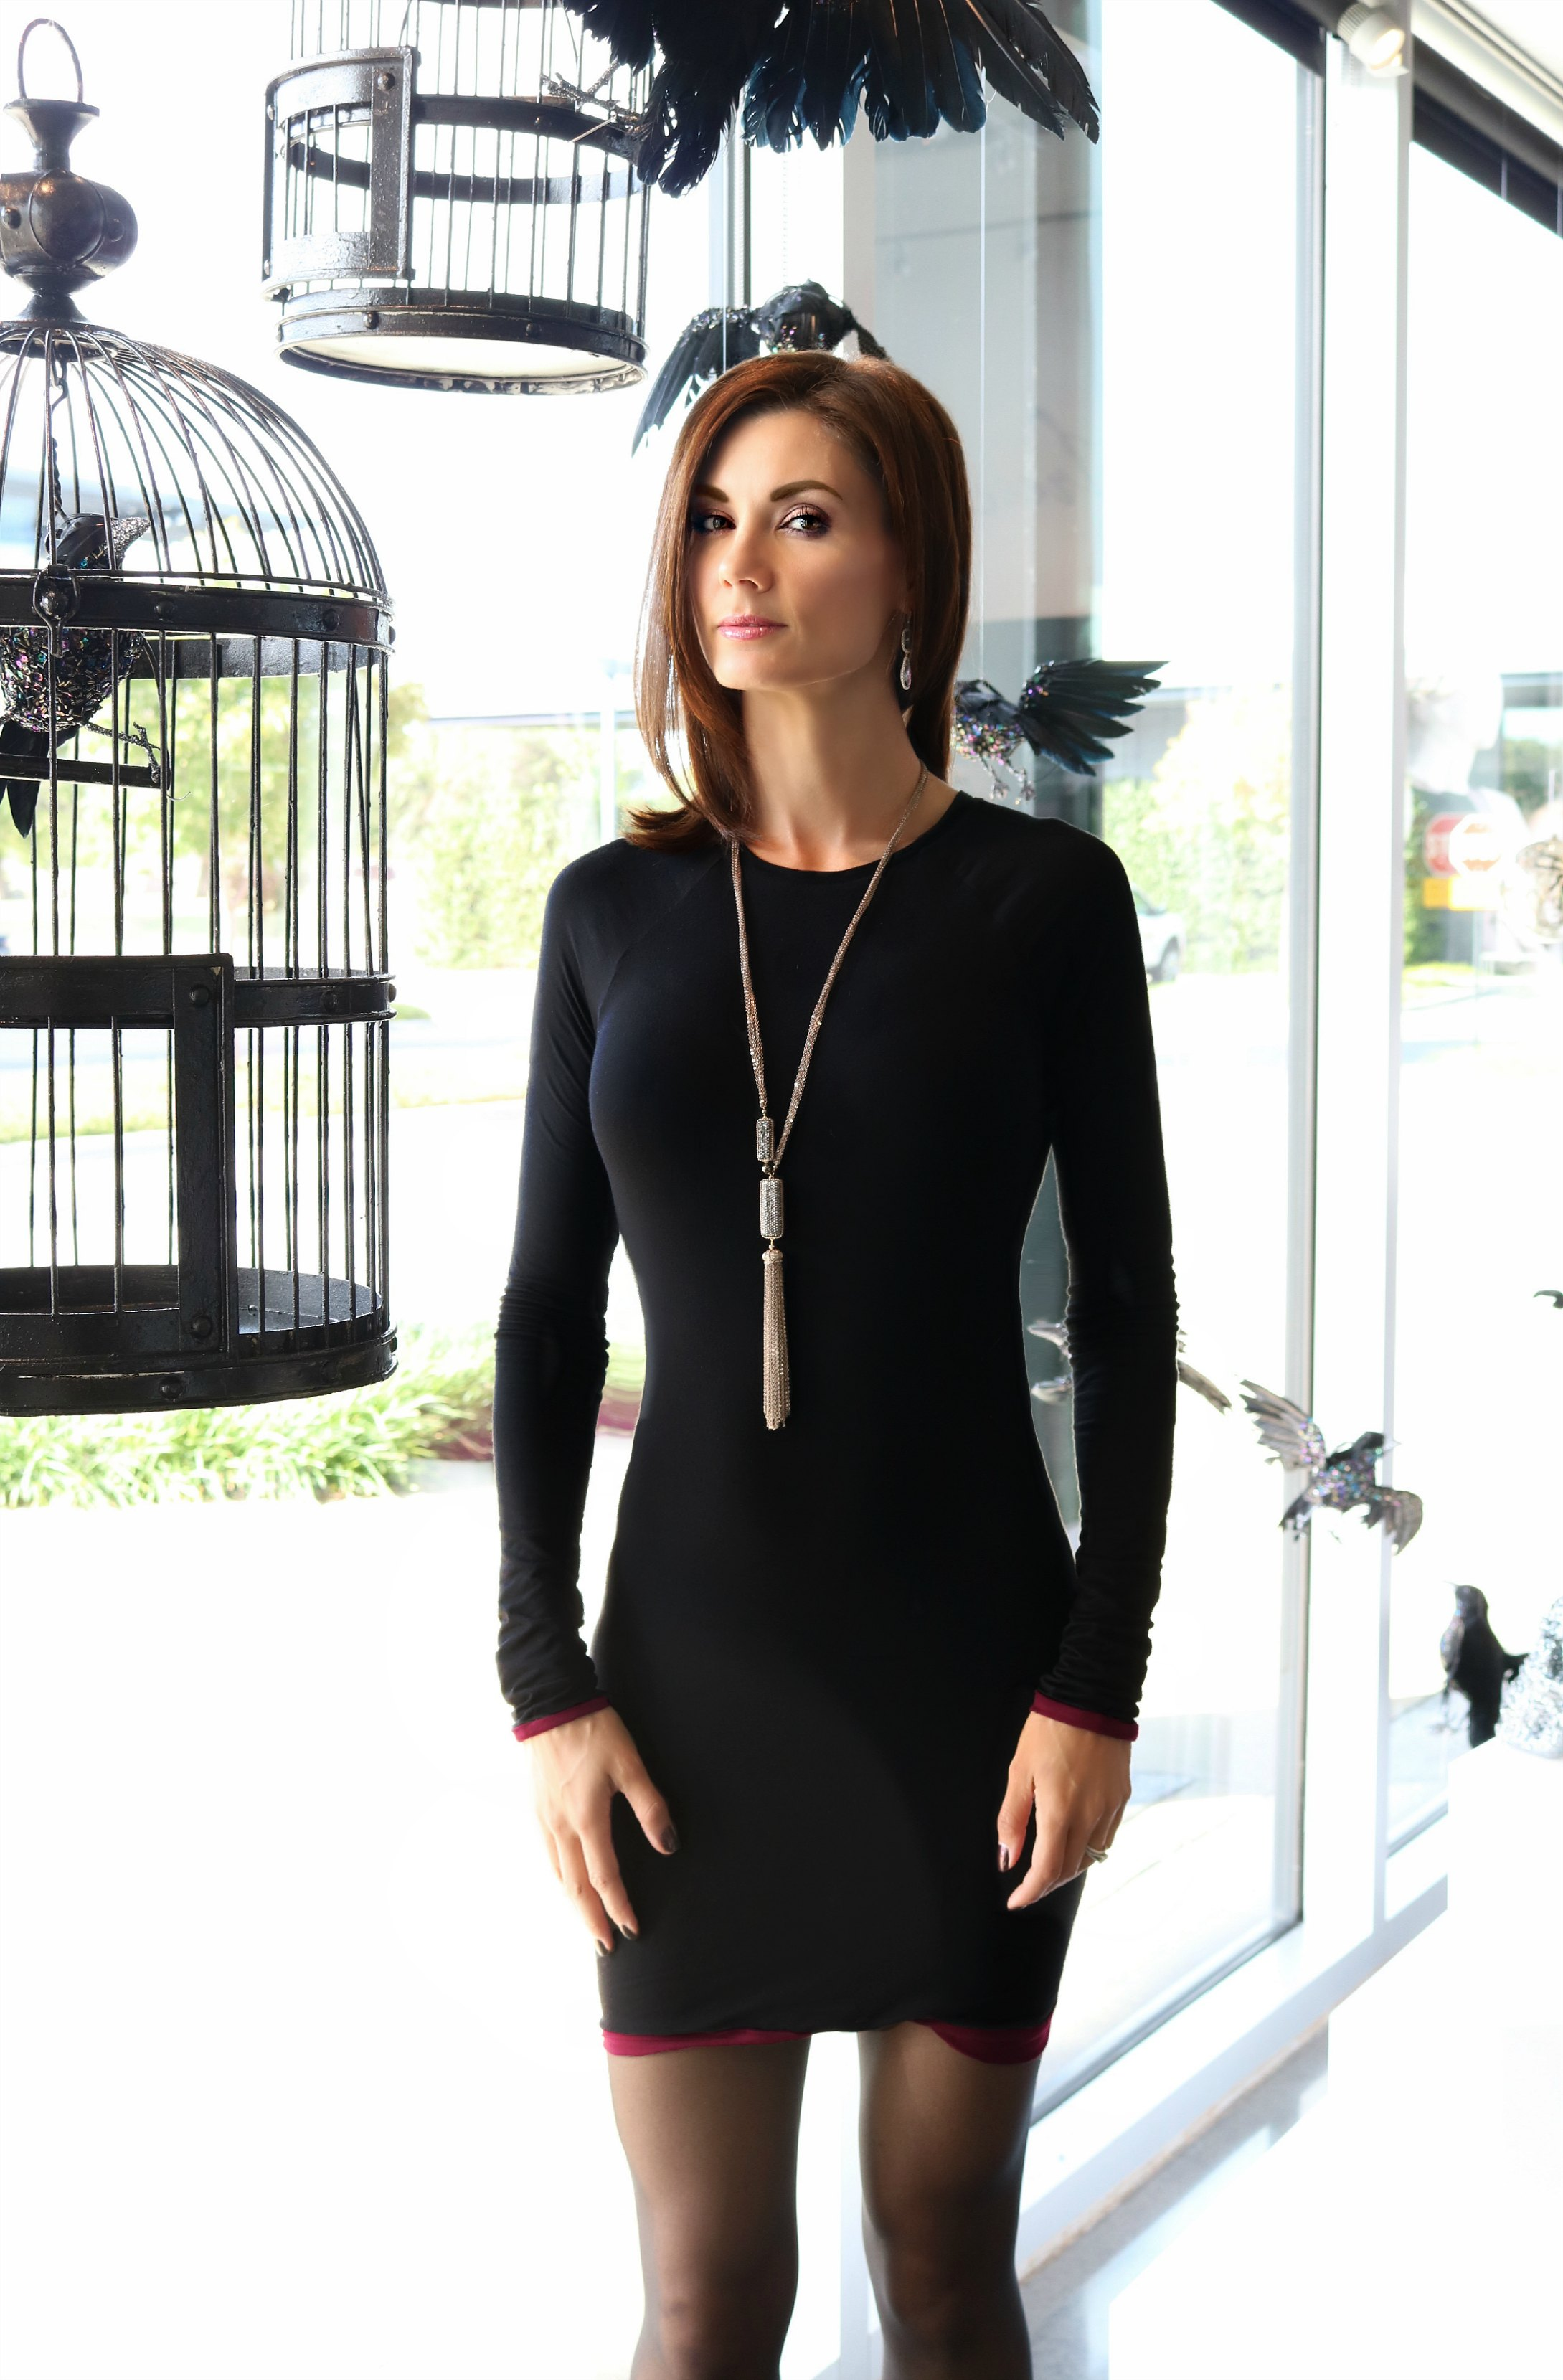 Karonlina Zmarlak Reversible Tunic/Dress Available Online  and Tassel Necklace in Antique Gold and Gunmetal